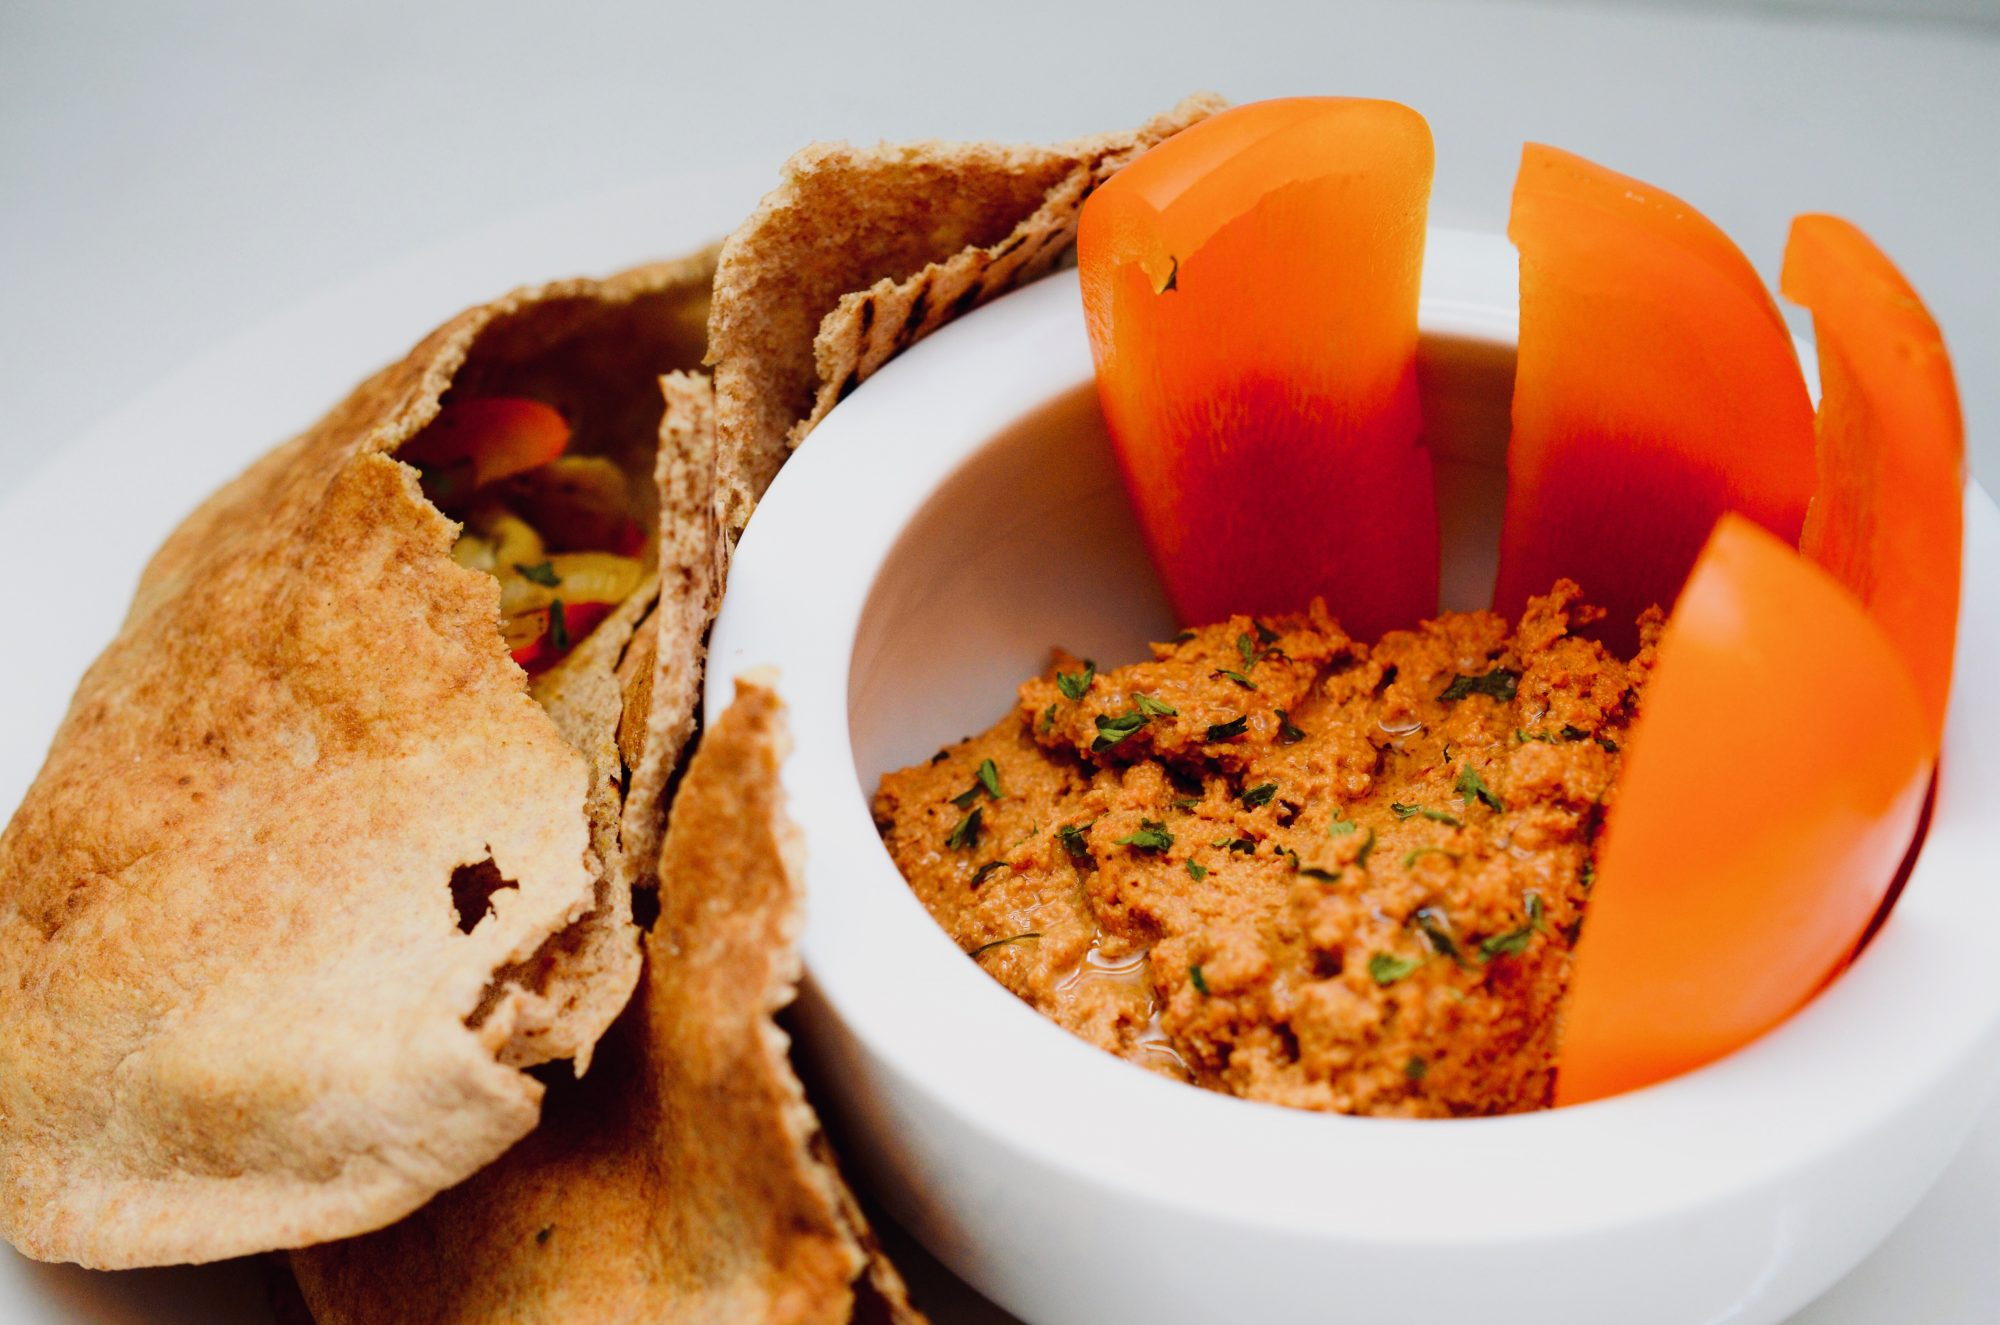 red pepper and walnut spread with pepper and bread accompaniments